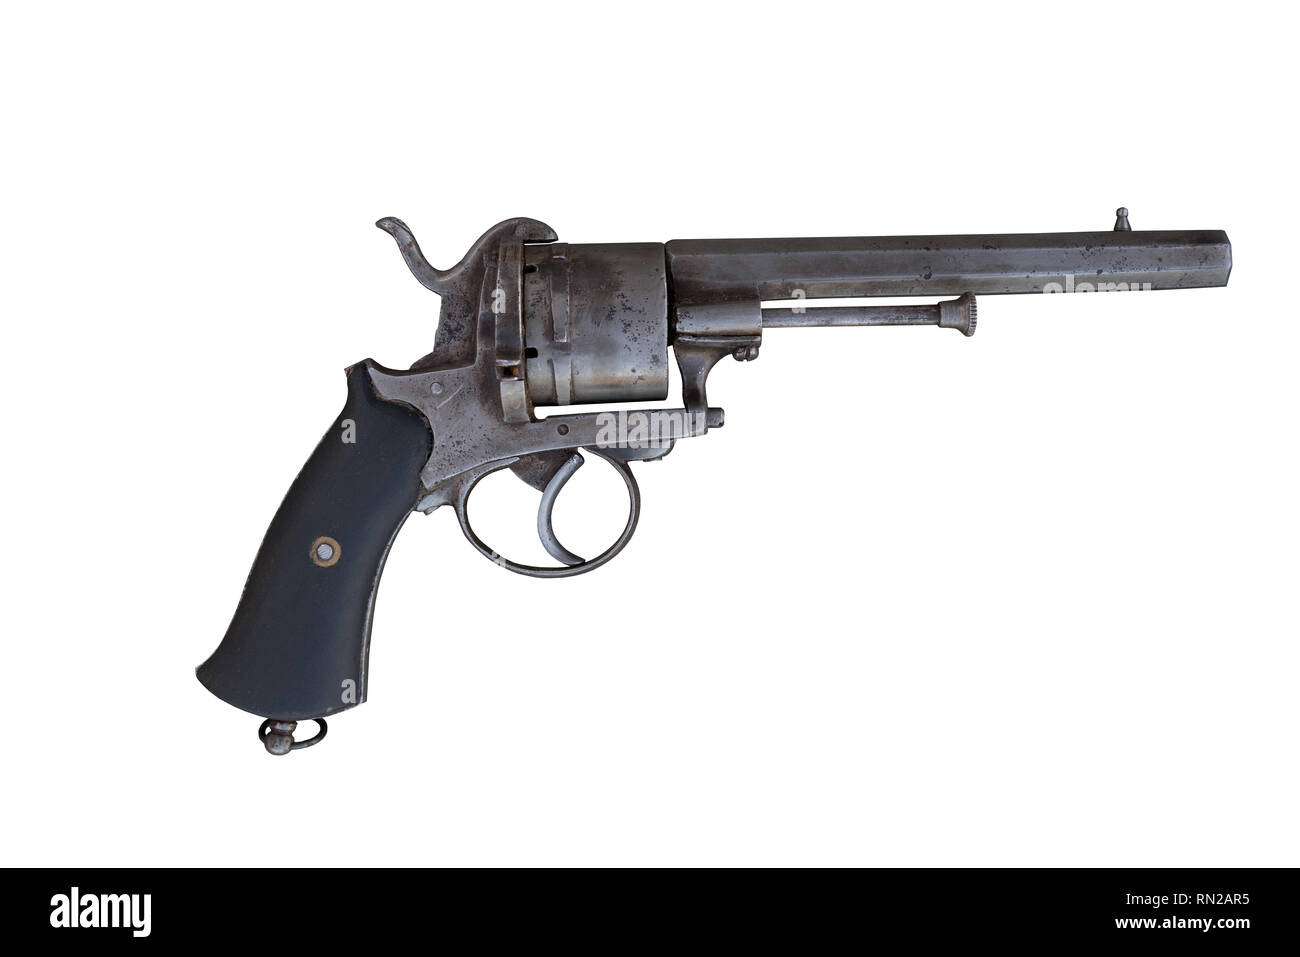 Old revolver. Ancient firearm. - Stock Image